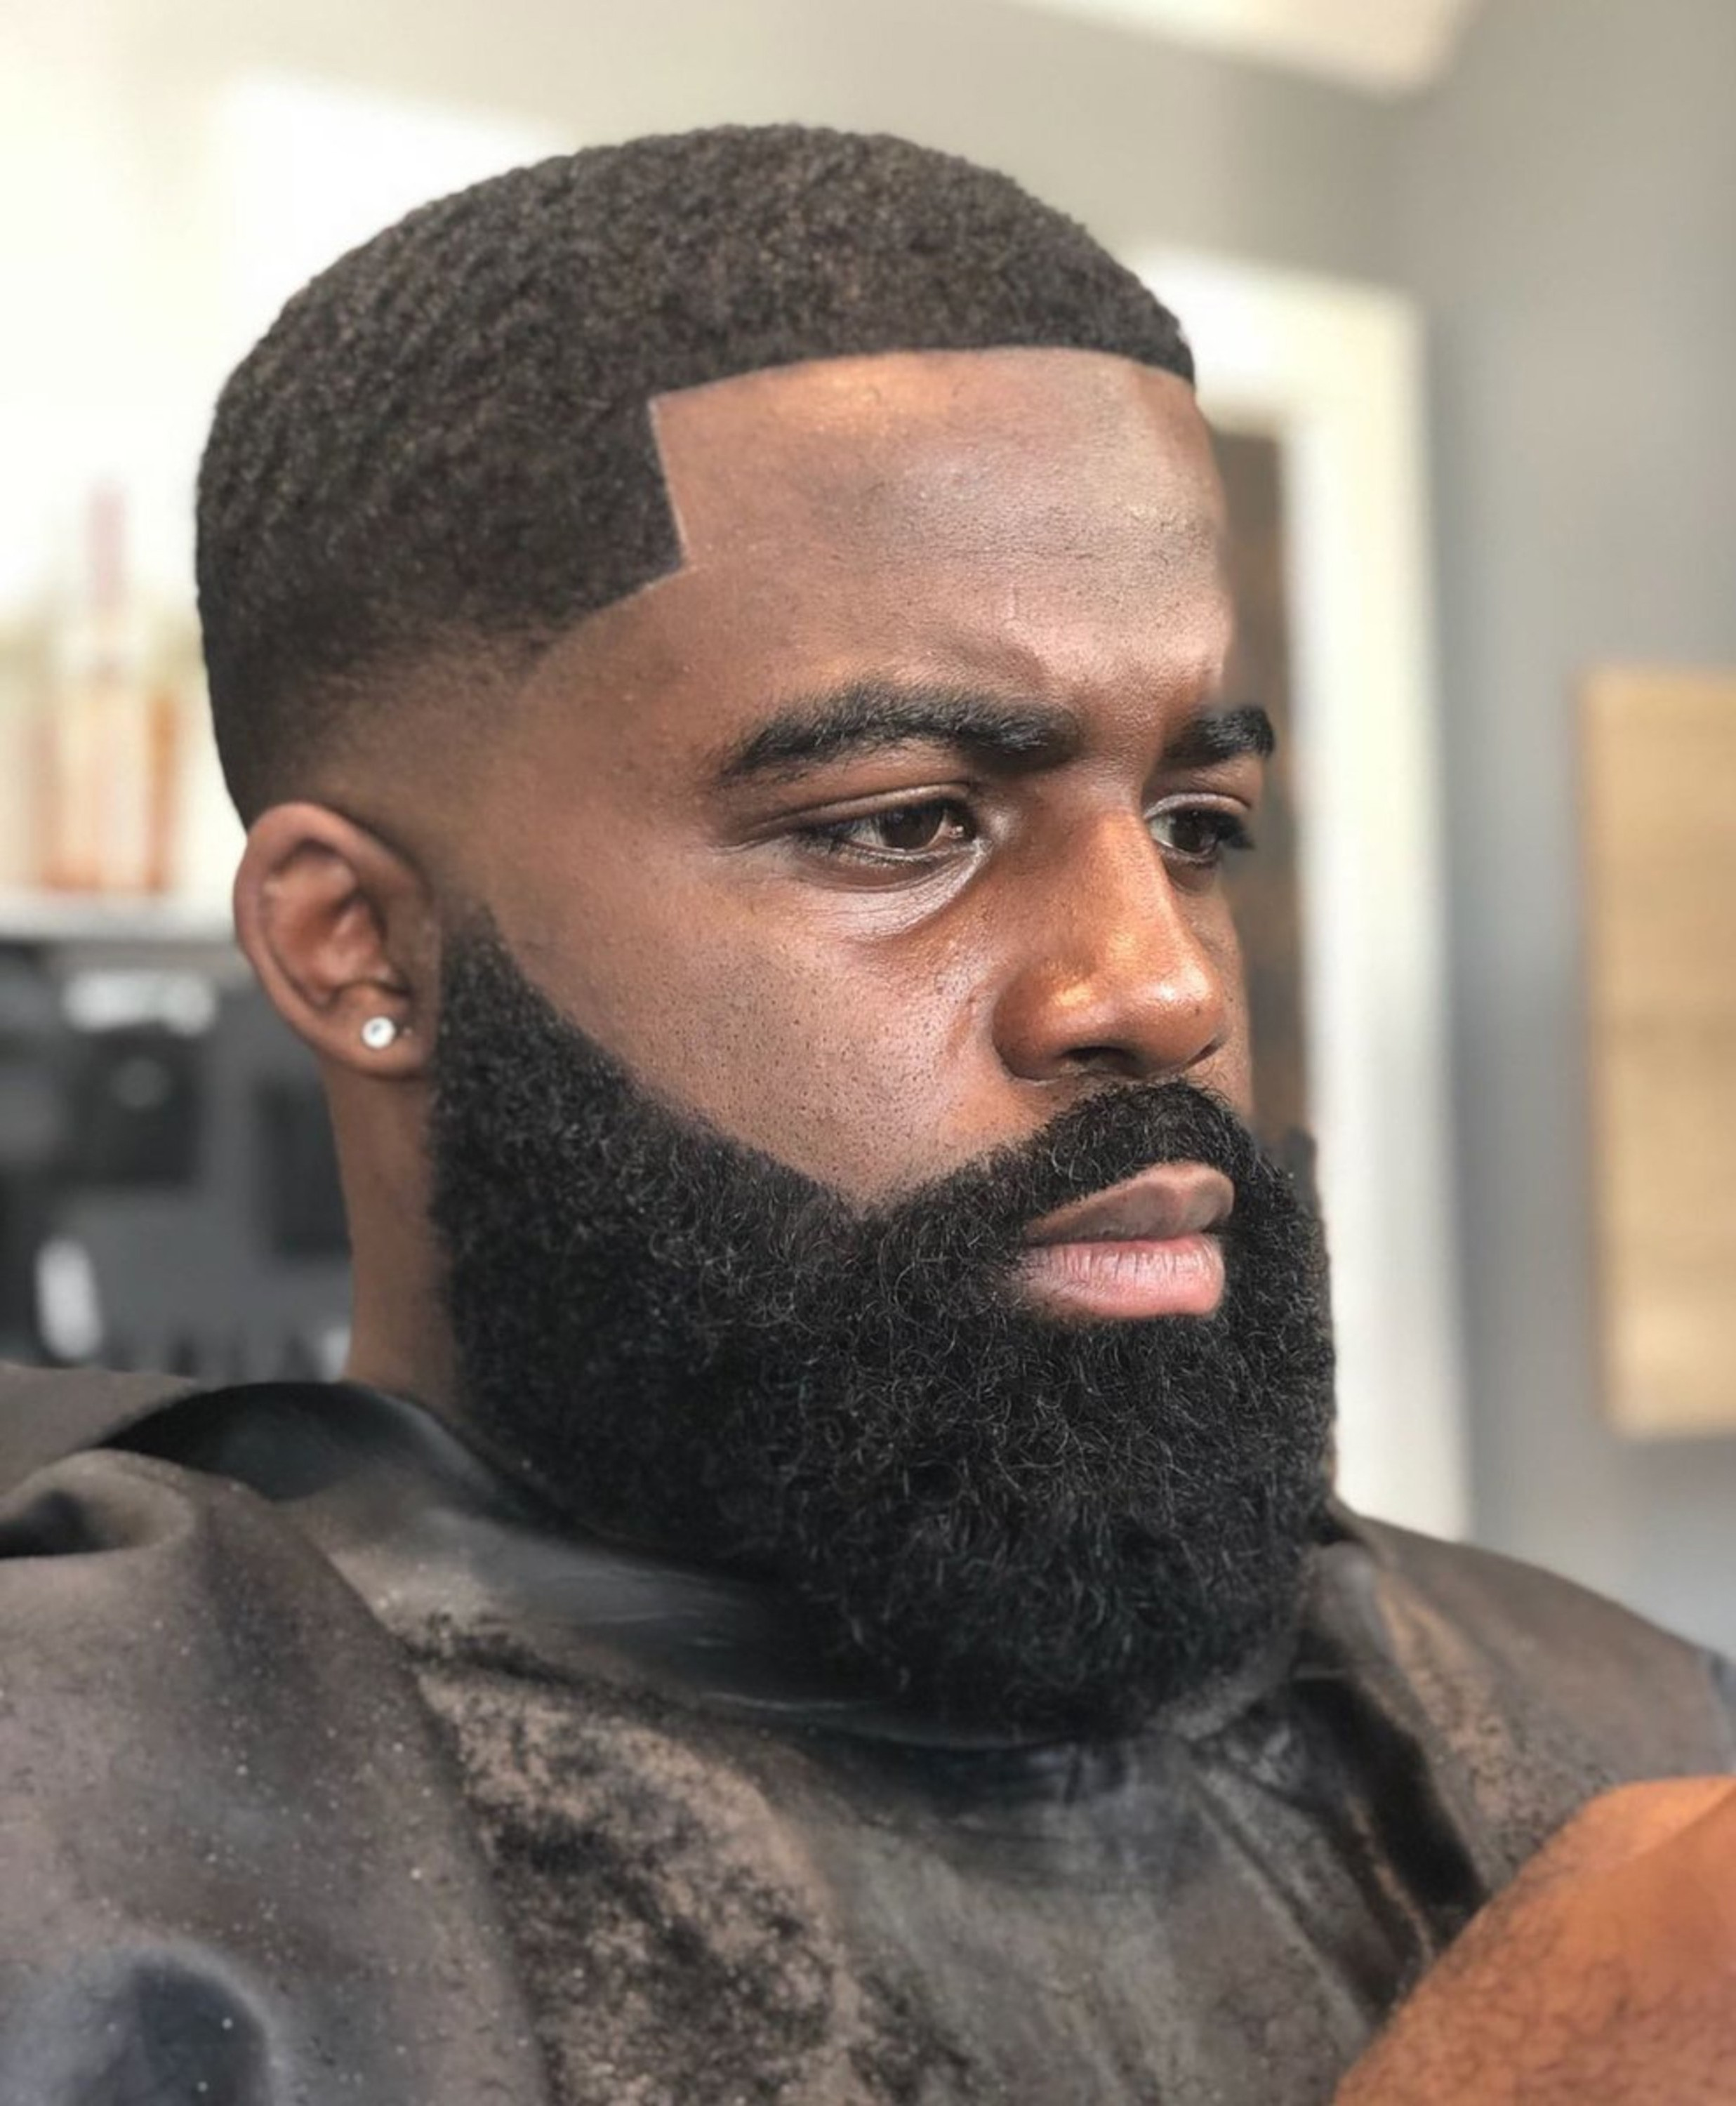 A black man beard in a lace front style.